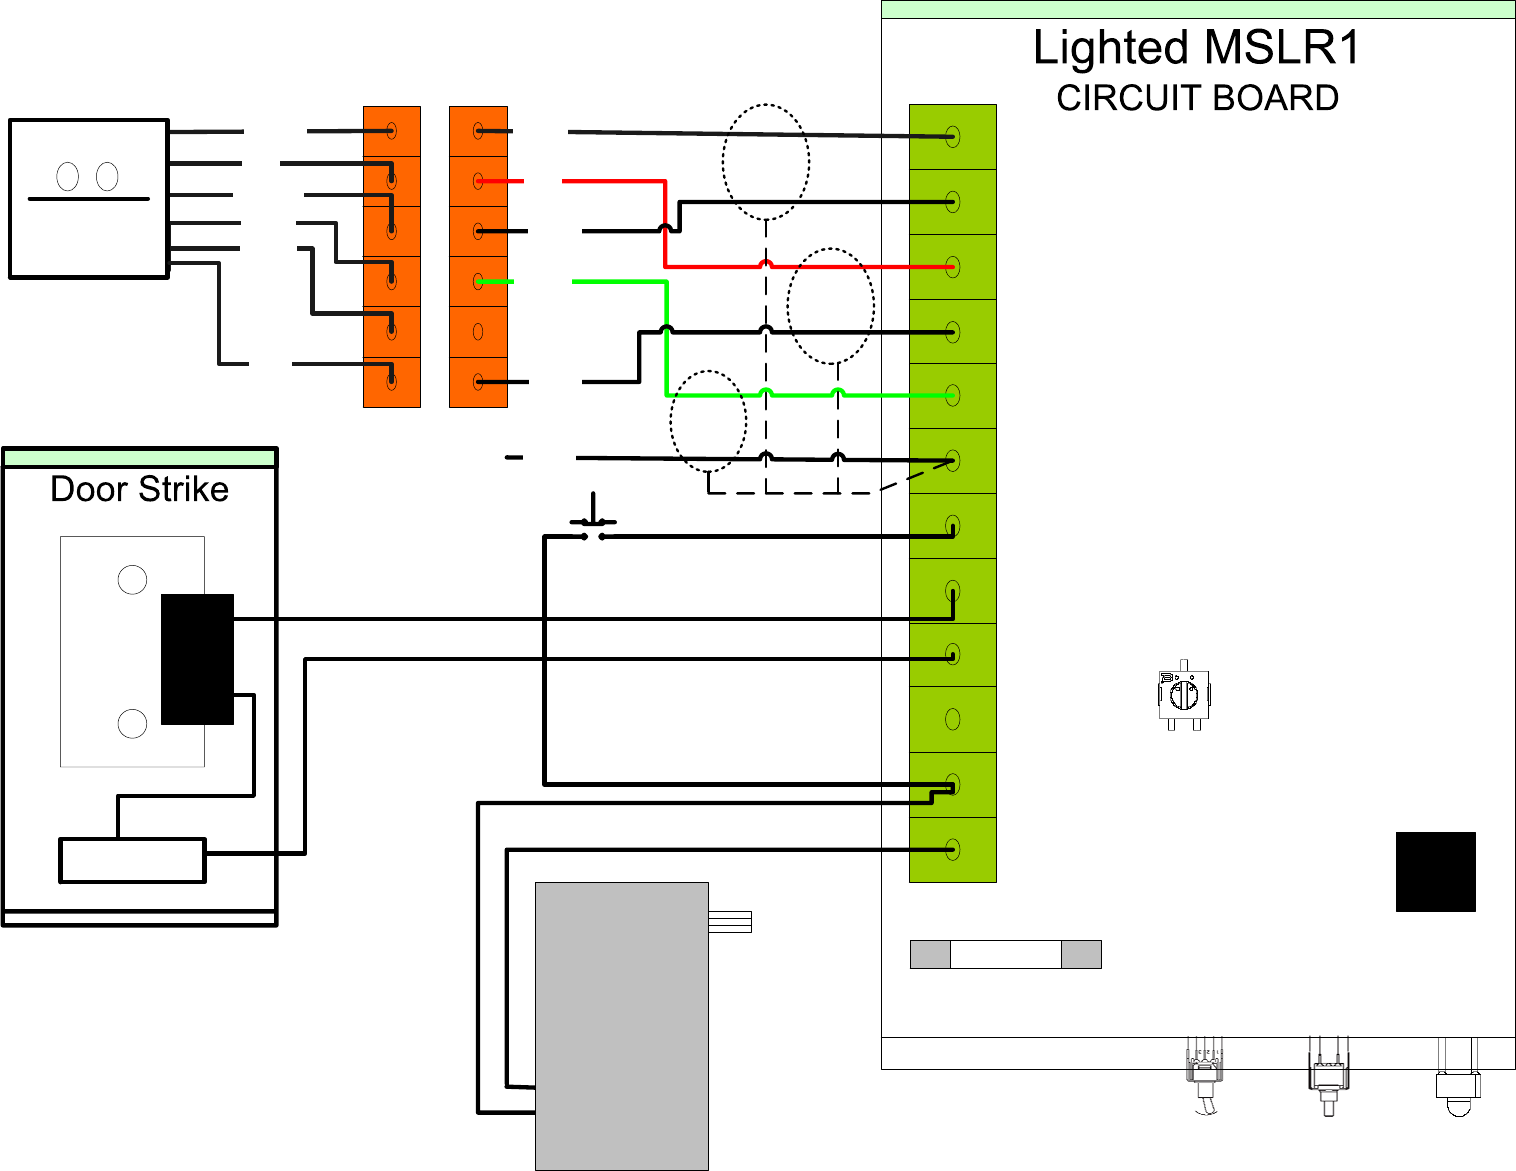 Synergistics Visio Mslr1 Wiring Diagram Kow3 001 Circuit